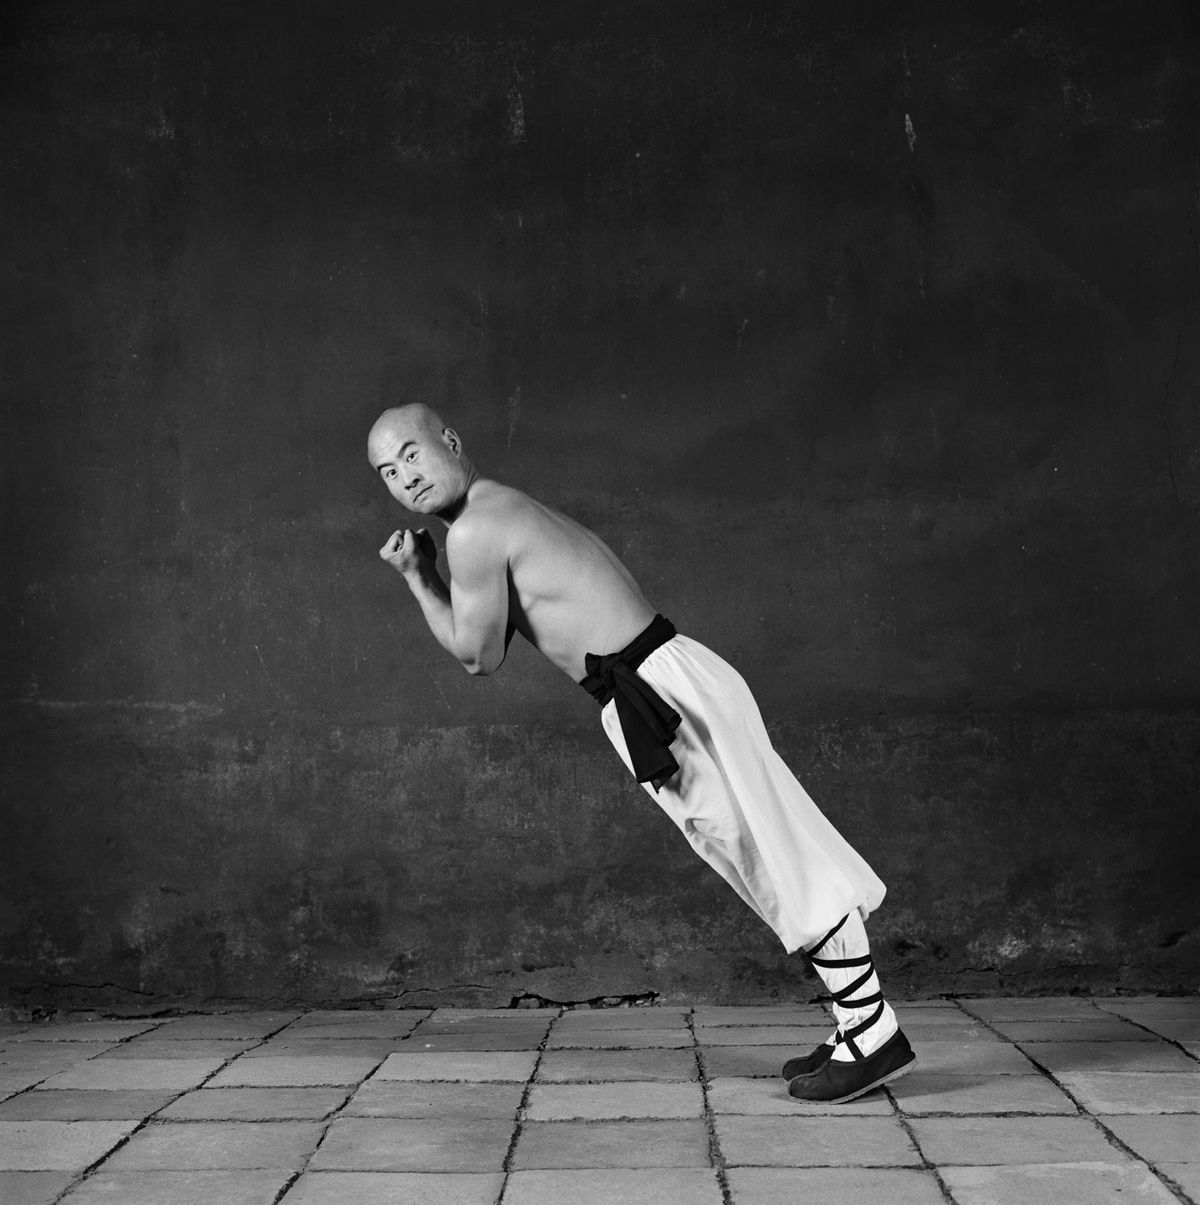 jeanlohshanglu:  After Isabel released the shutter the monk would be on the floor striking an invisible adversary with his elbows and knucle...